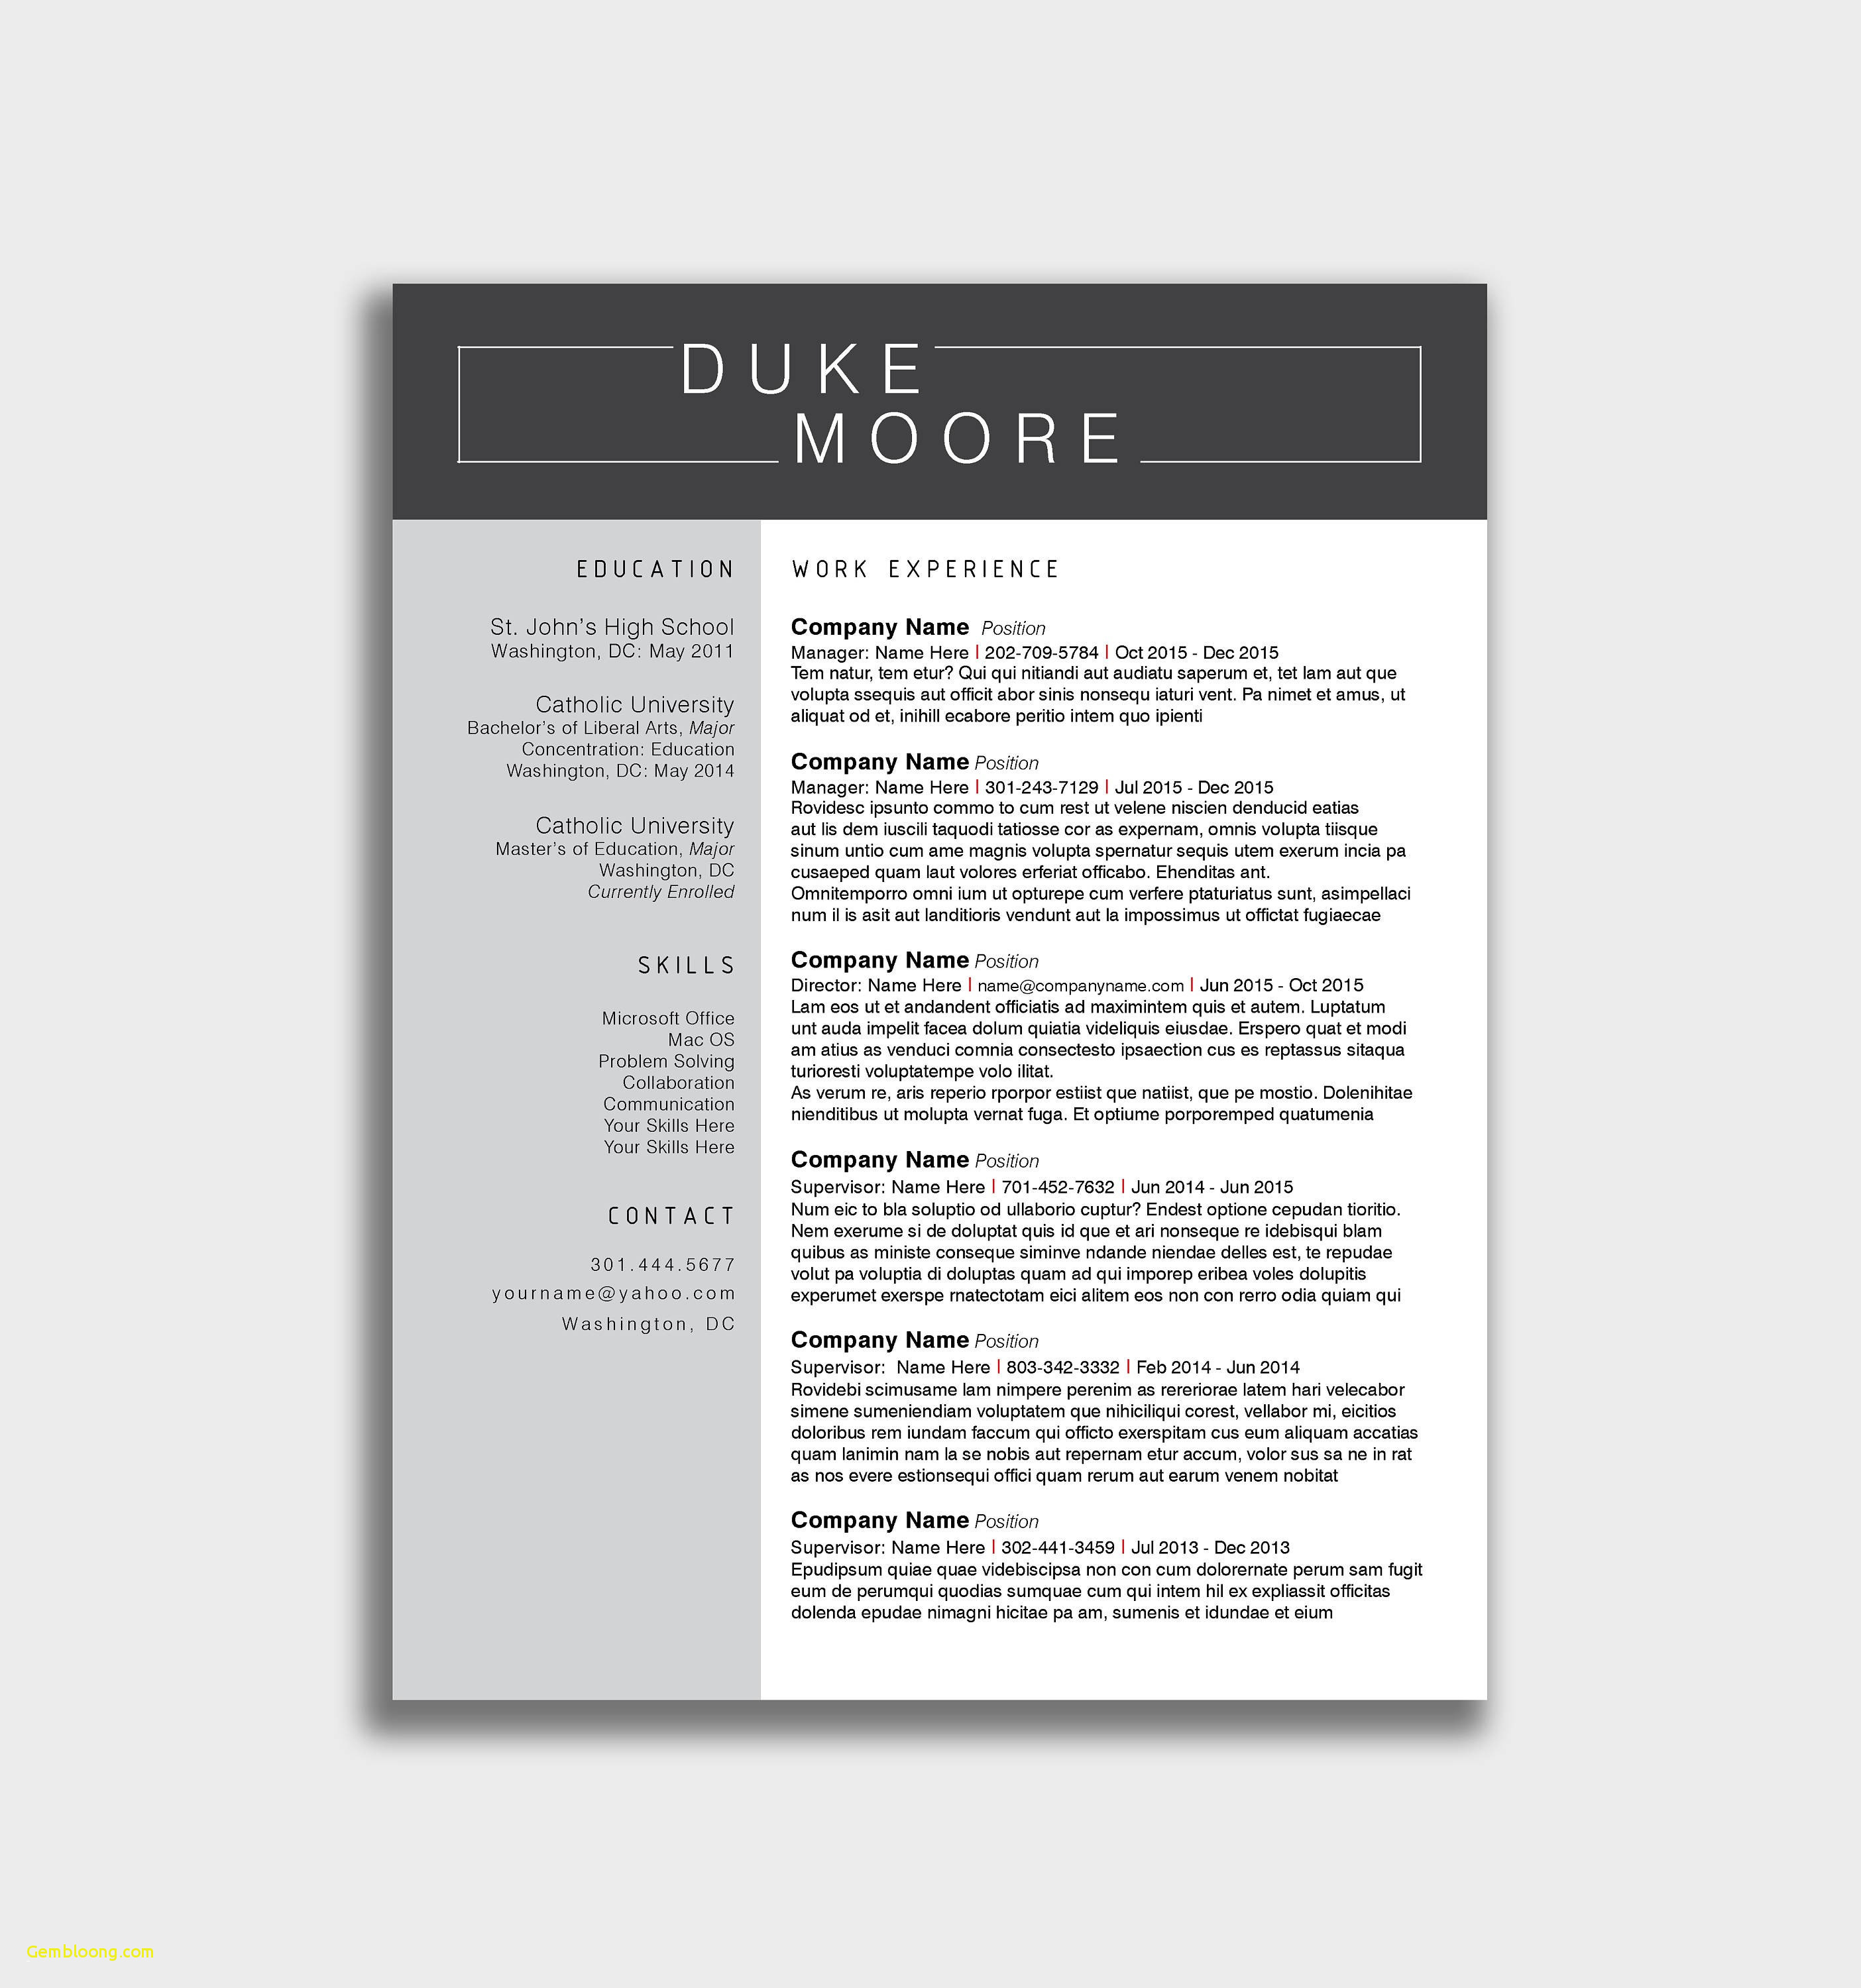 Modern Resume and Cover Letter Template - Creative Resume Template Free Download New Ficial Resume Templates